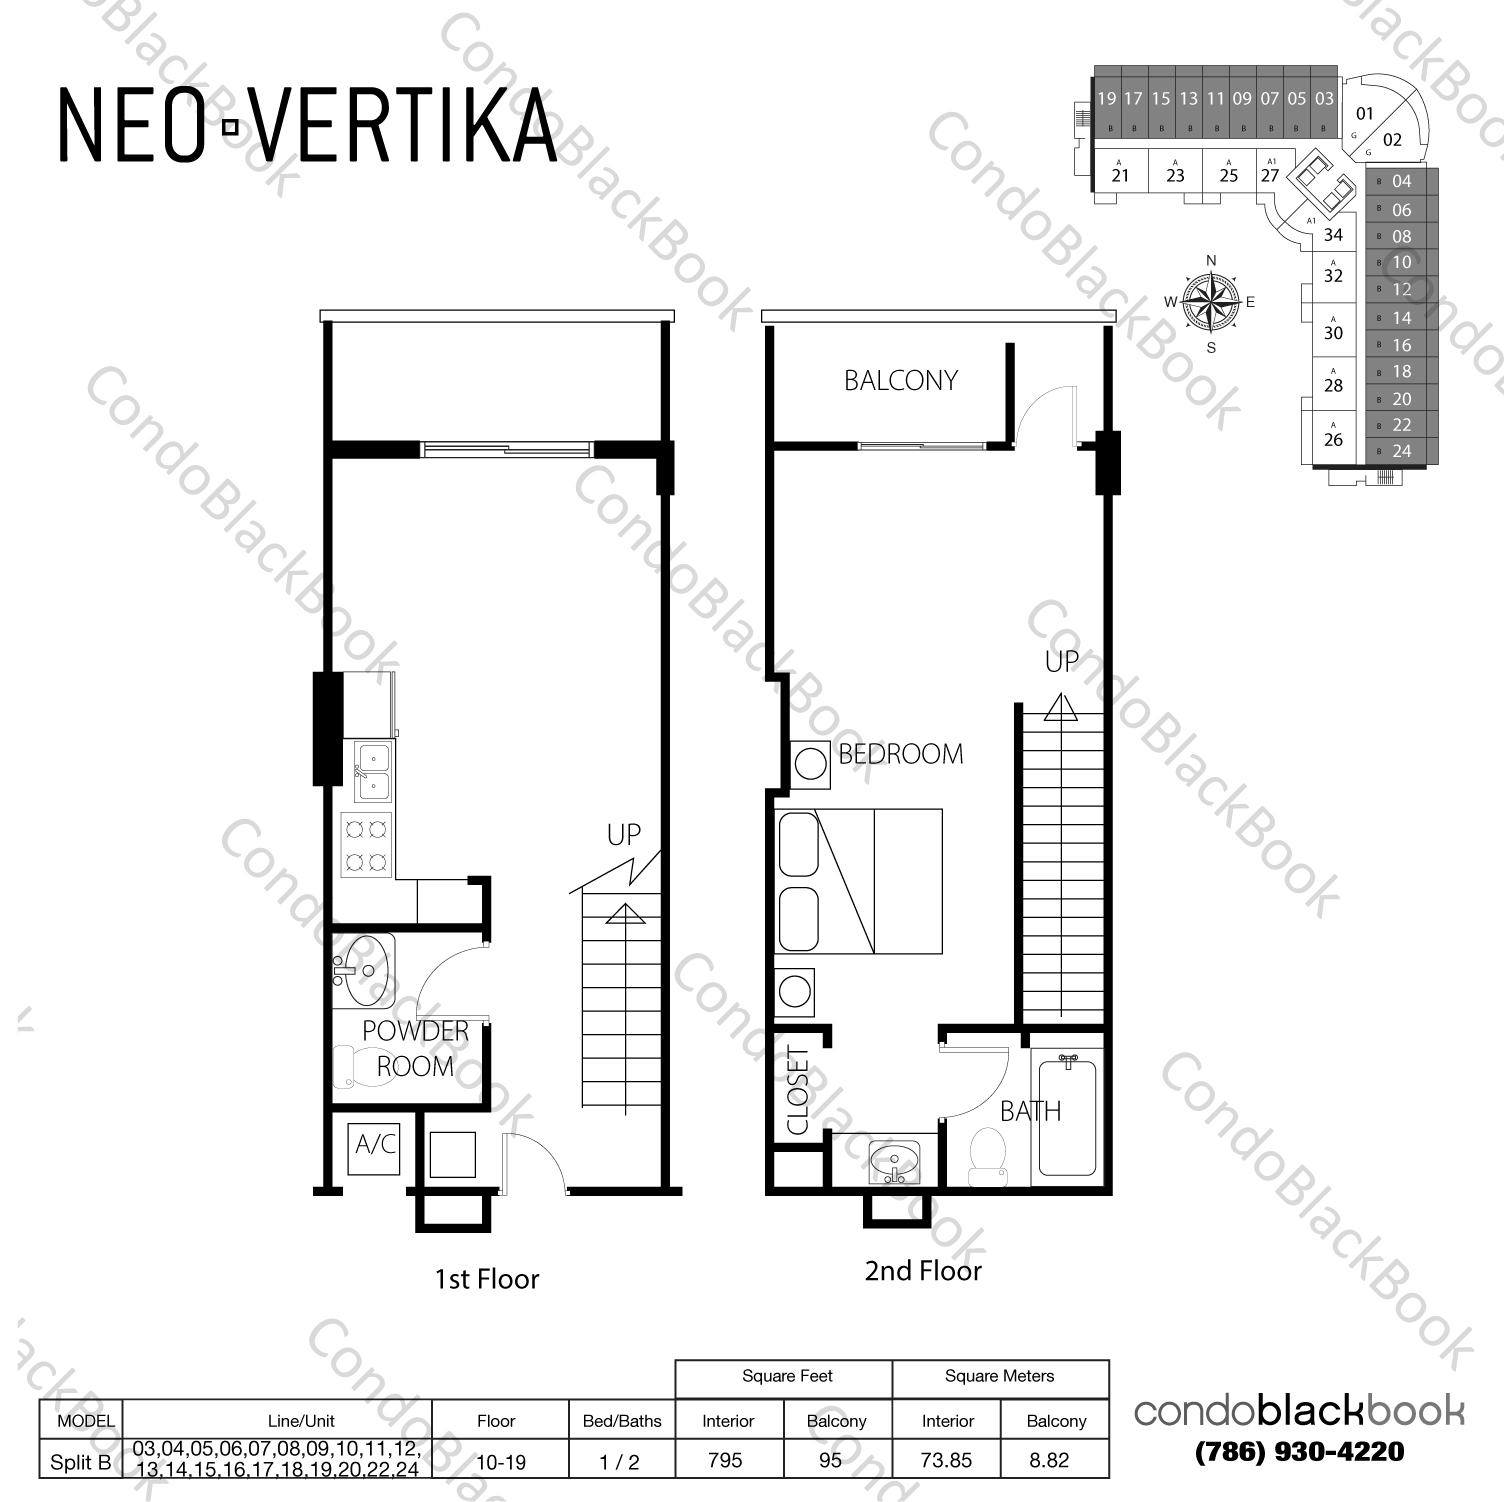 Neo Vertika: Neo Vertika Unit #1204 Condo For Sale In Brickell